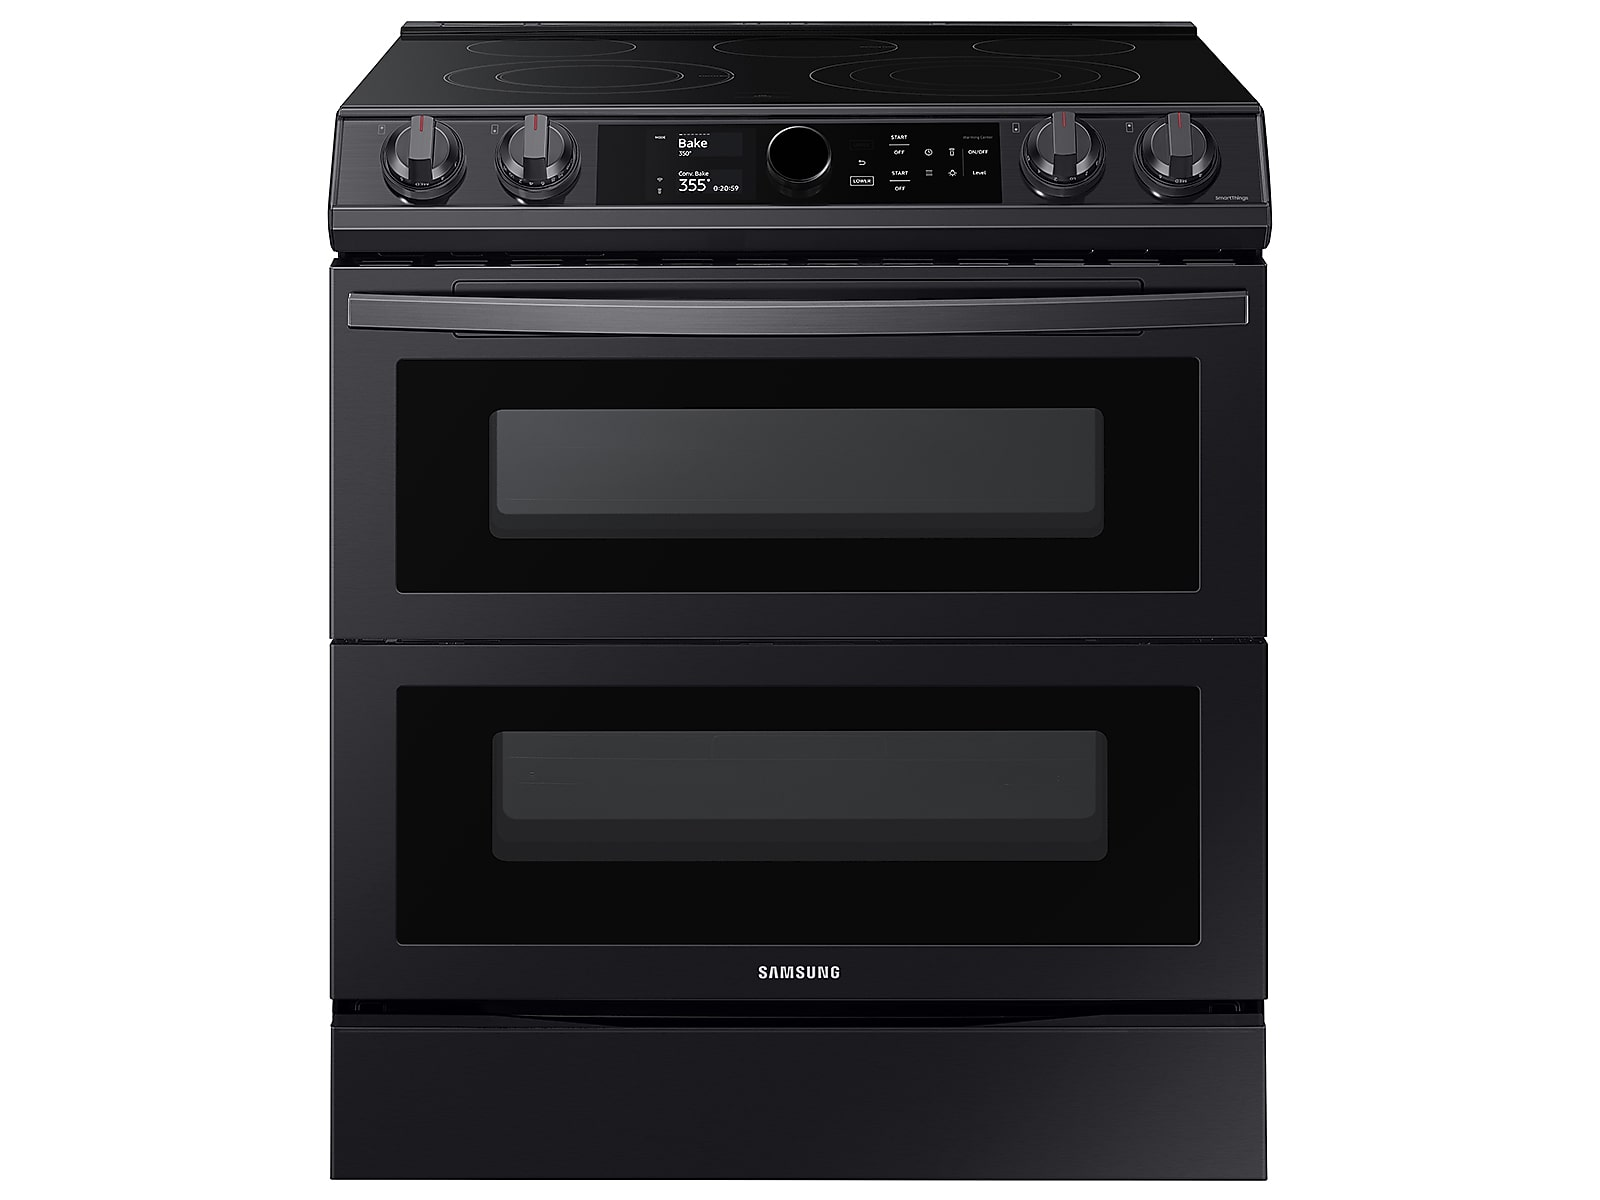 Samsung 6.3 cu ft. Smart Slide-in Electric Range with Smart Dial, Air Fry, & Flex Duo™ in Black Stainless Steel(NE63T8751SG/AA)